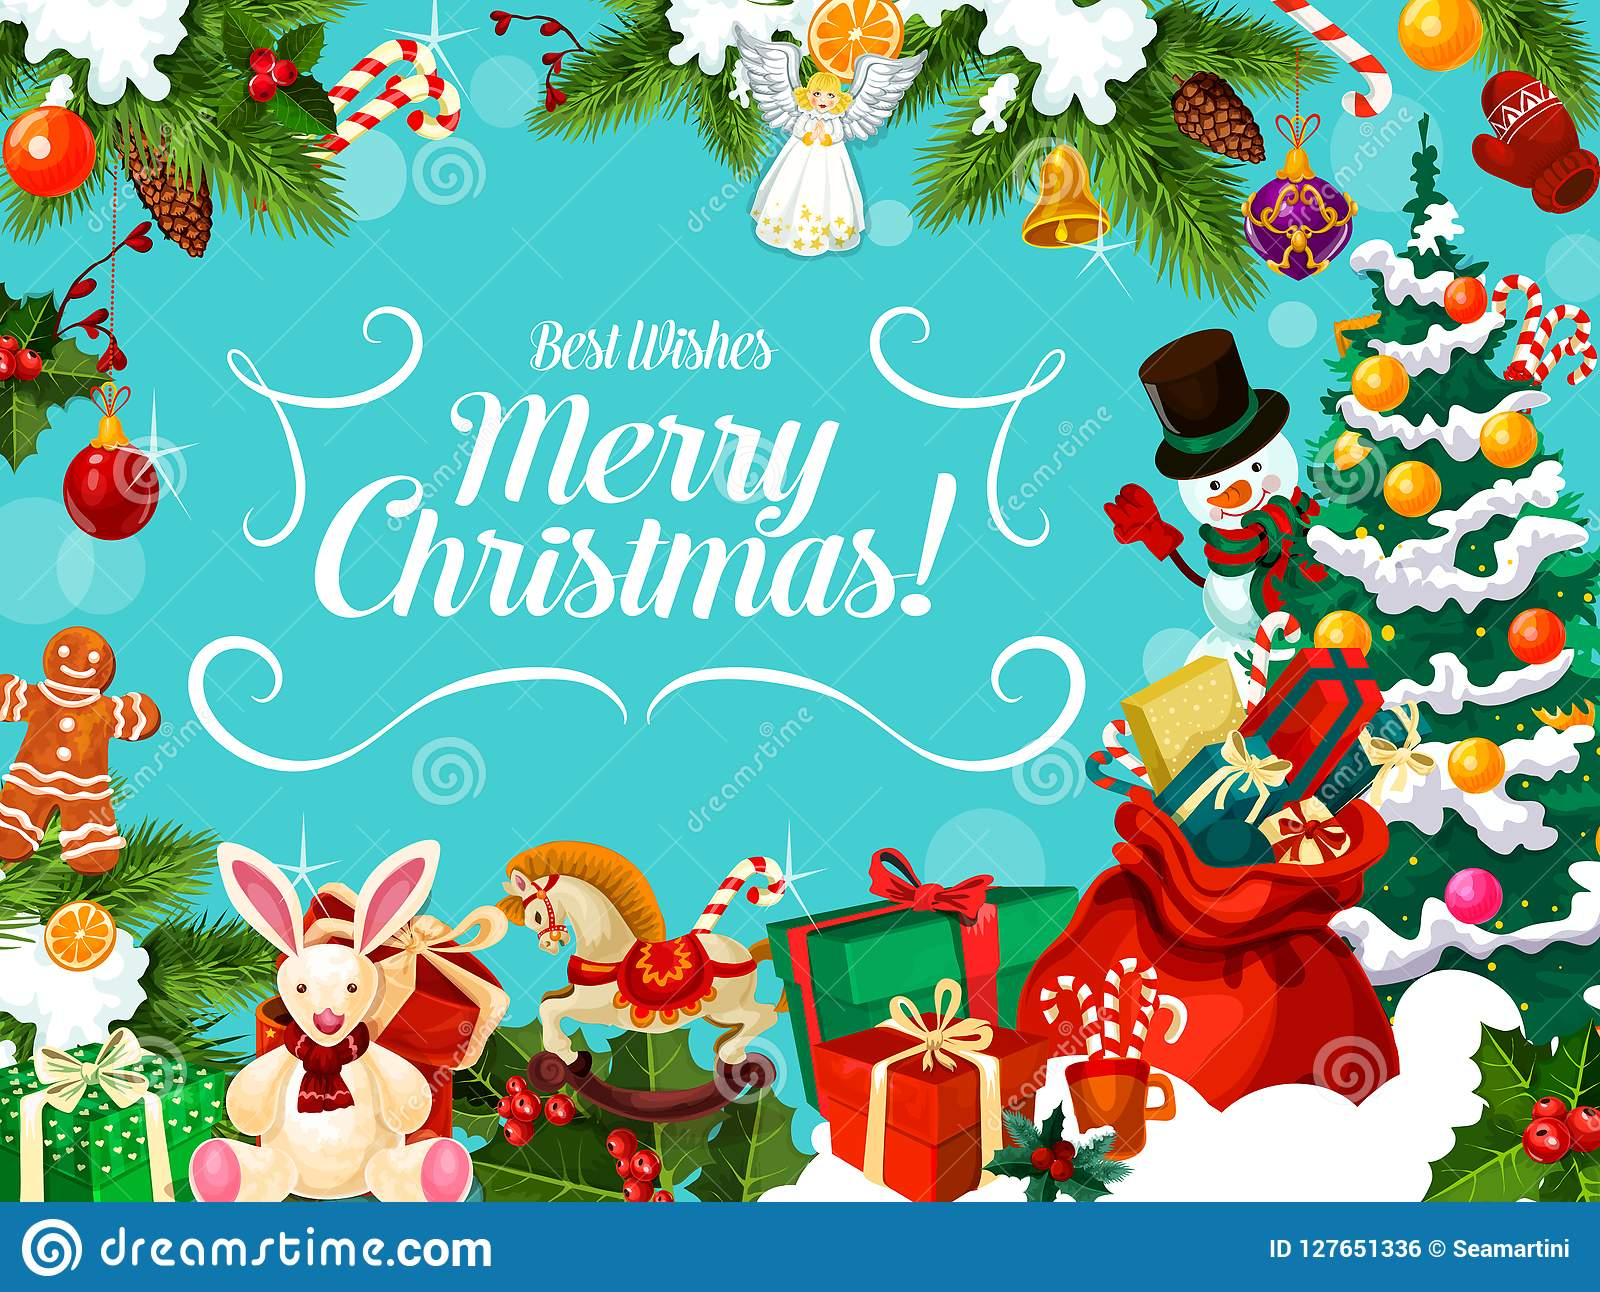 Christmas Card With Winter Holiday Greeting Wishes Stock Vector